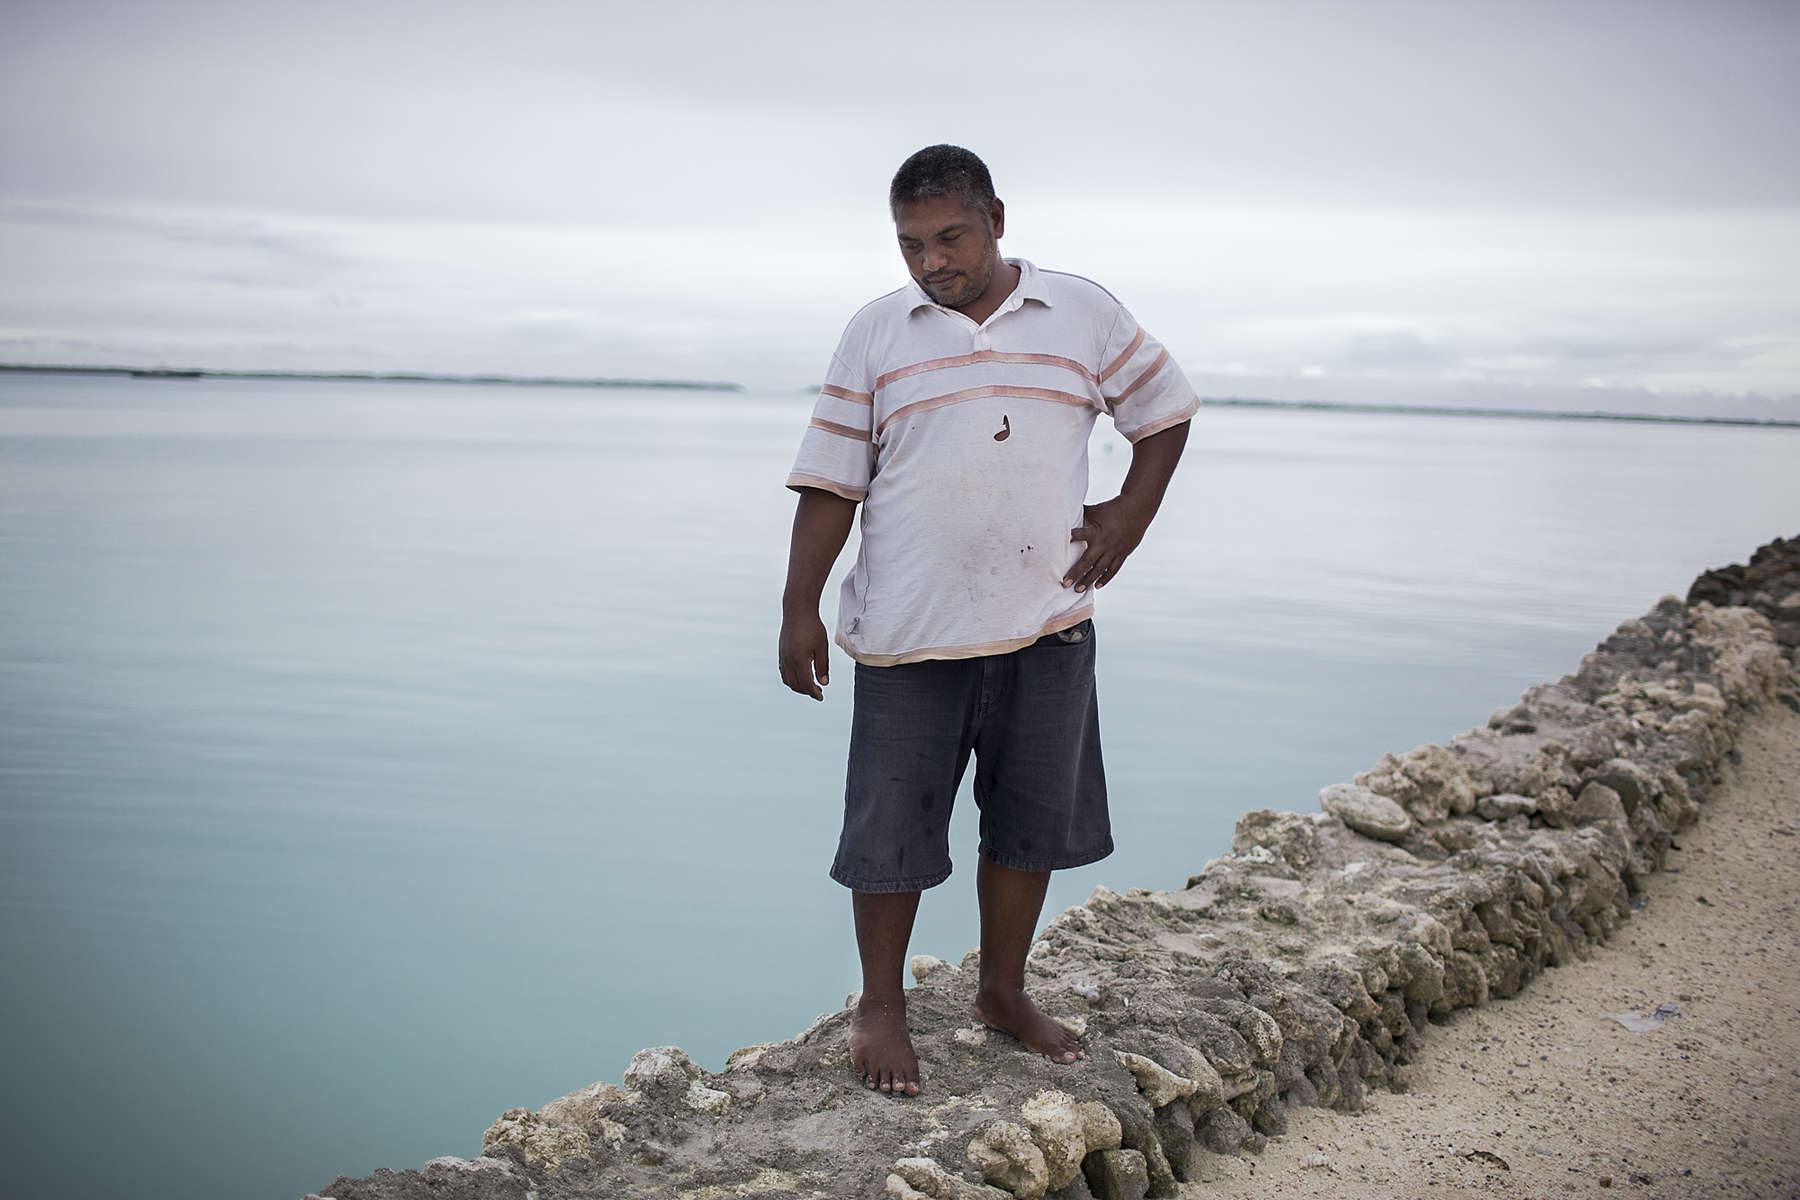 Moaniba Ratitaake, 40 years old, stands on the seawall he has built to protest his home.  Moaniba lives in Eita village on South Tarawa island, initially he could drive all the way to the house, but for the last 4-5 years much of the land remains underwater during hightide. Moaniba plans to build more sea walls around the land that reaches the ocean but he concedes this is only a short term fix for what will inevitably be uninhabitable land.